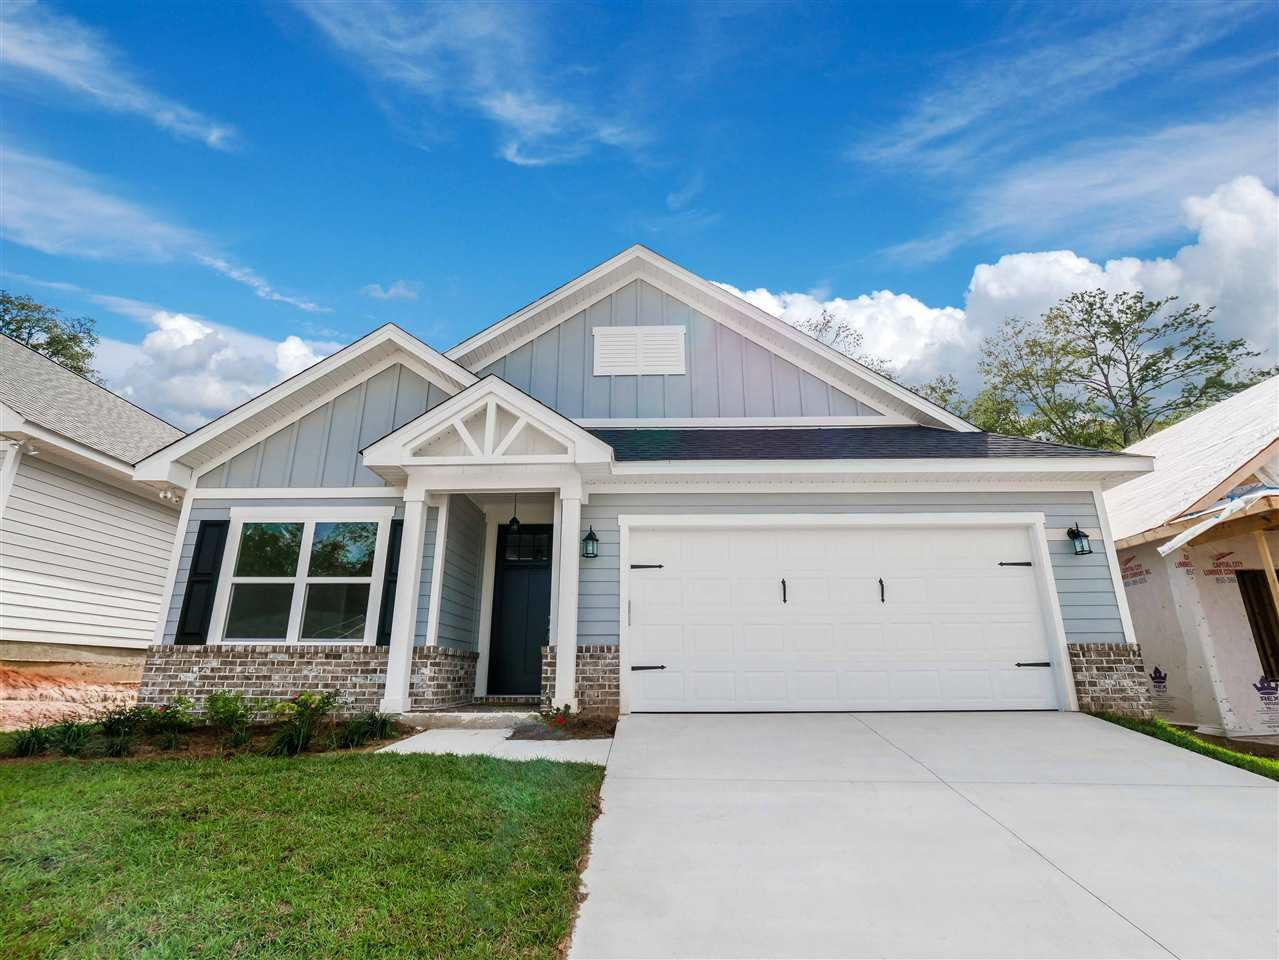 5157 Lexington Creek Drive, Tallahassee, FL 32311 - MLS#: 326430